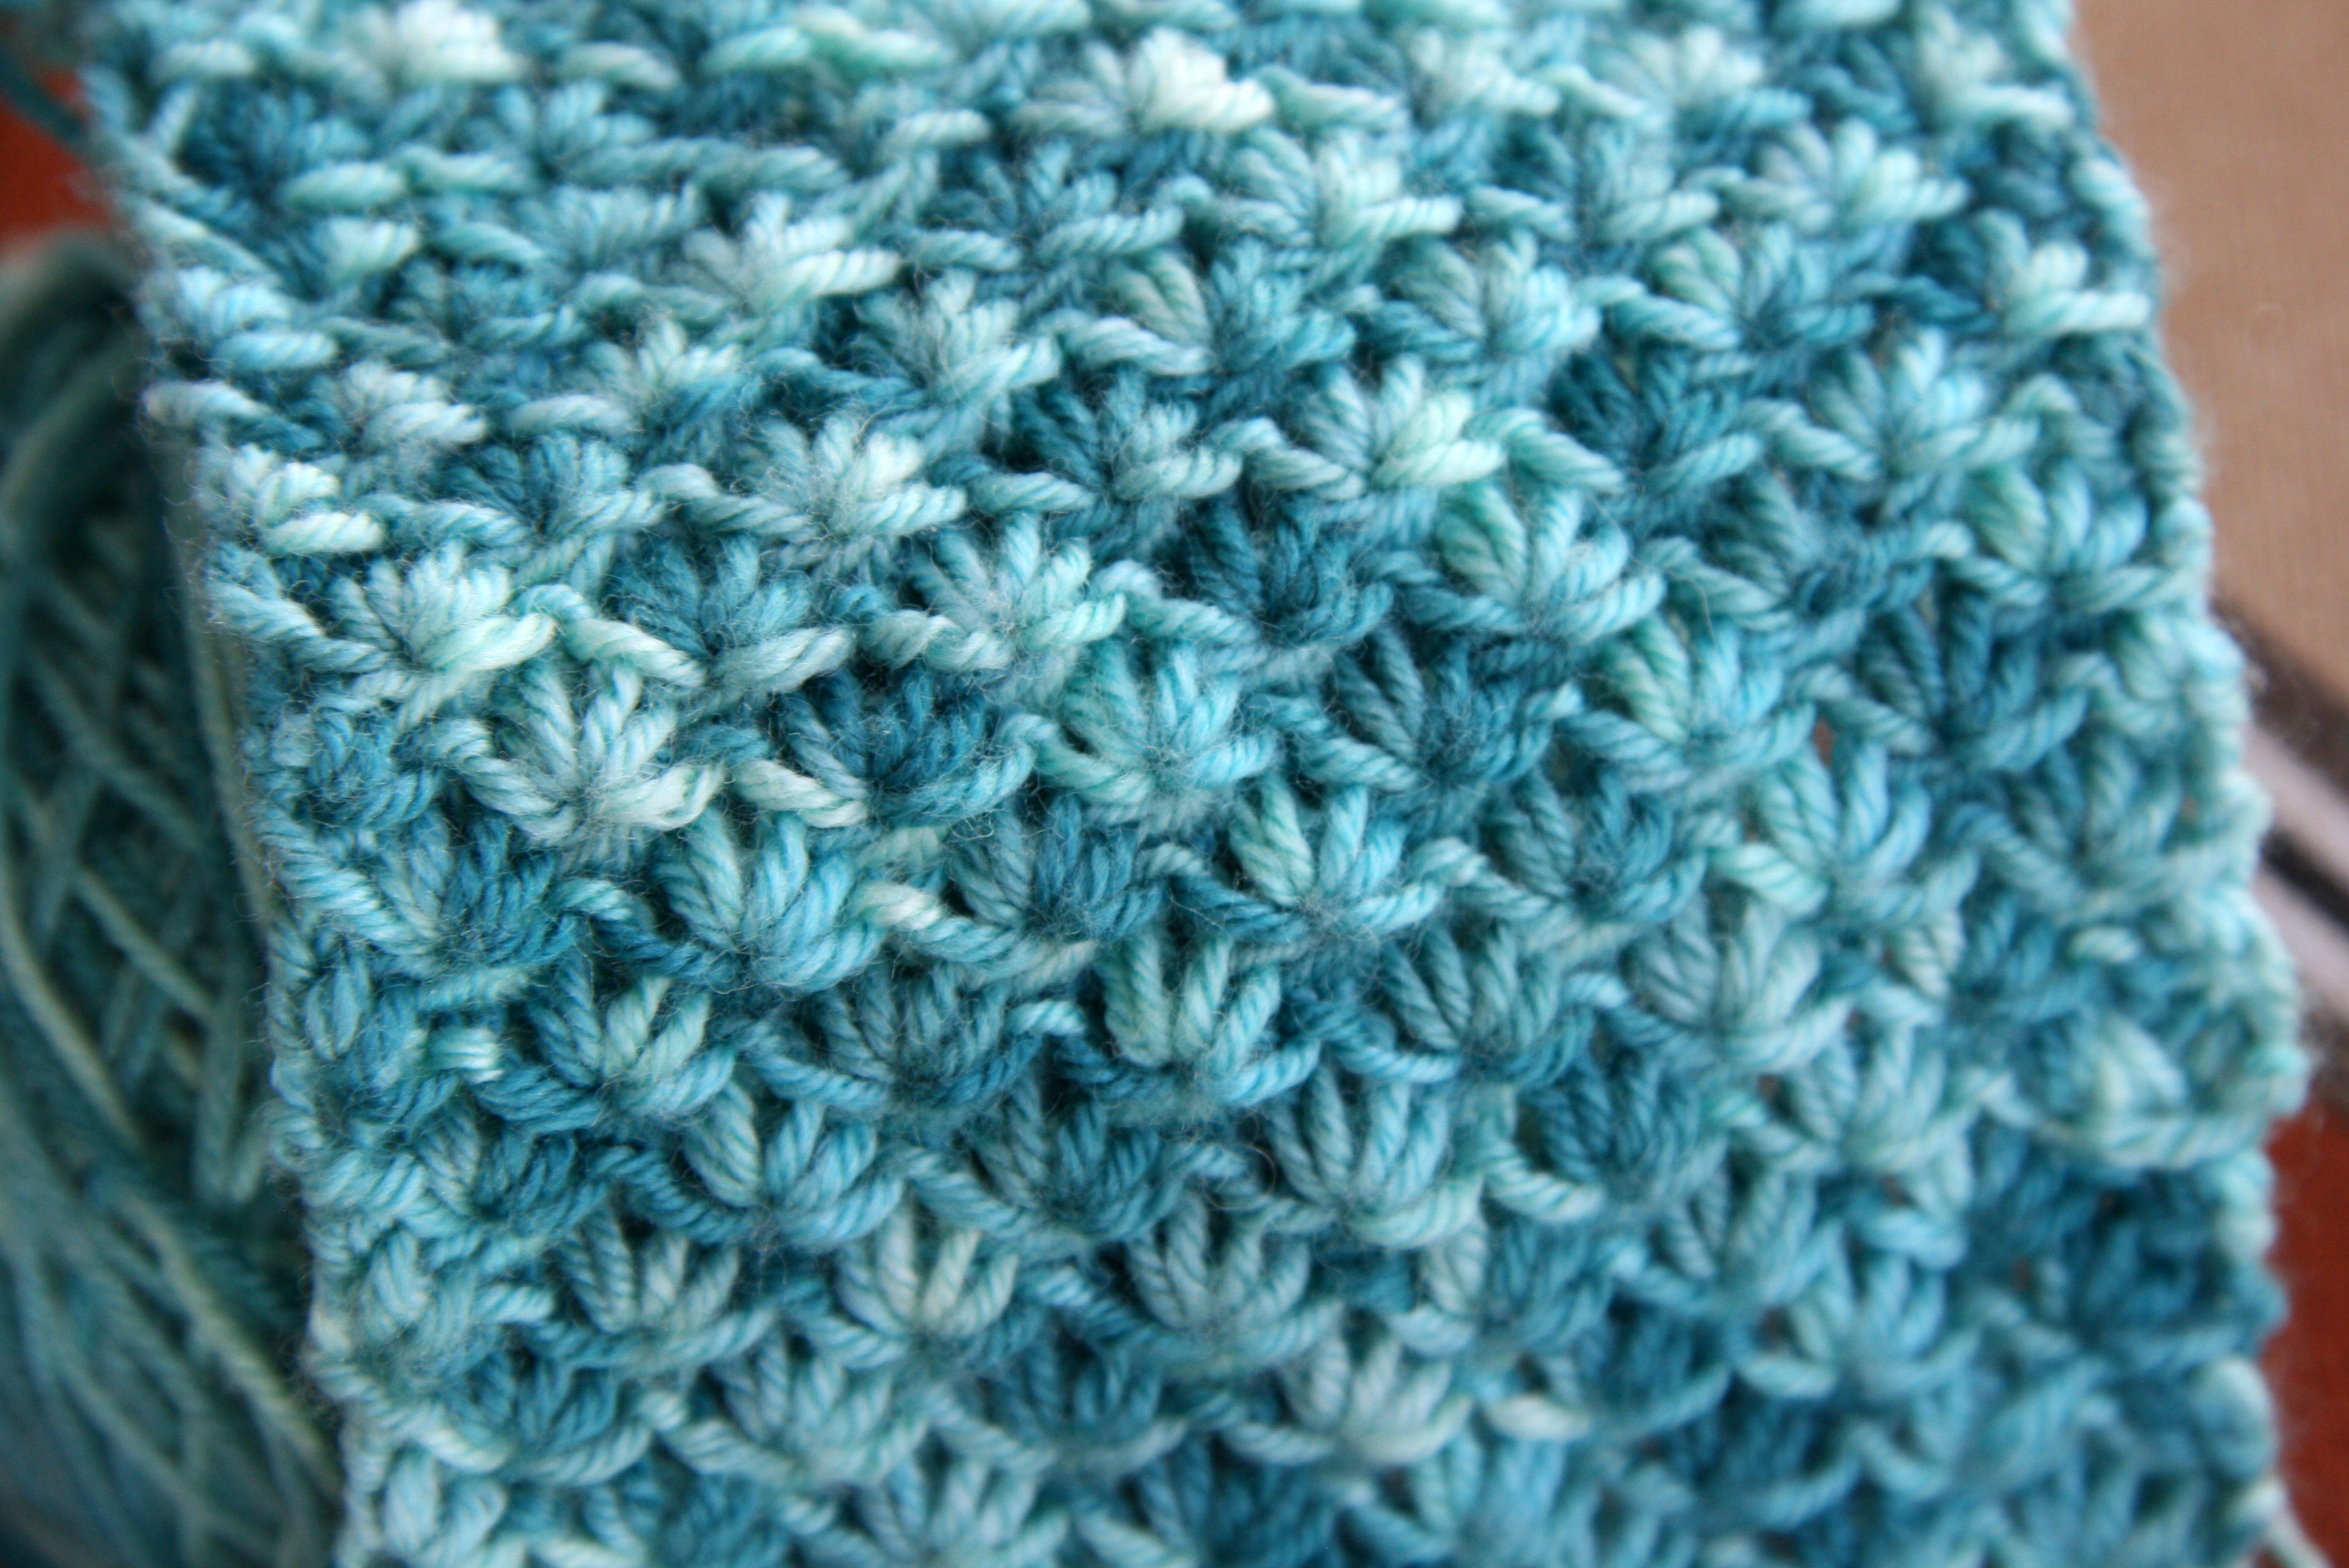 Crochet Knit Stitch Scarf : also made Davey a bunny this week . I saw a cute free pattern from ...